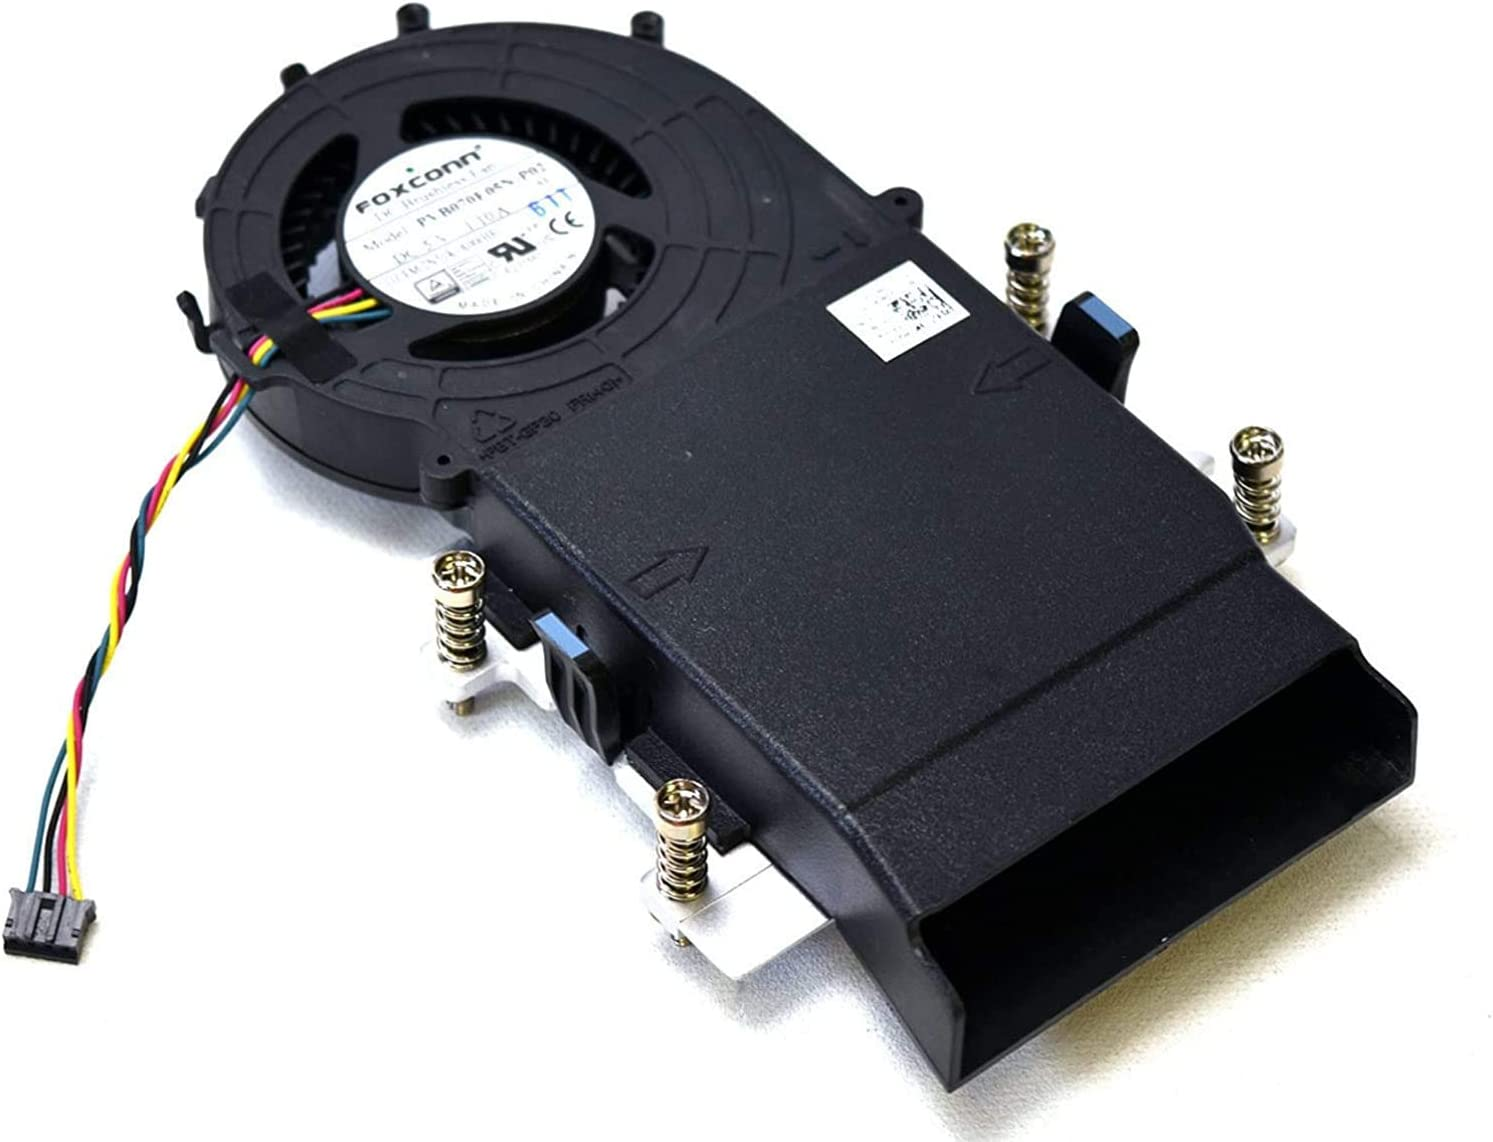 5JV3N Genuine OEM Dell Optiplex 3020M 9020M 7020M 7040M 7050M Desktop Fan Assembly with 2N51K Cooling Blower Fan CPU Shrouded Heatsink Captive Thumbscrews Base Plate 19P4P